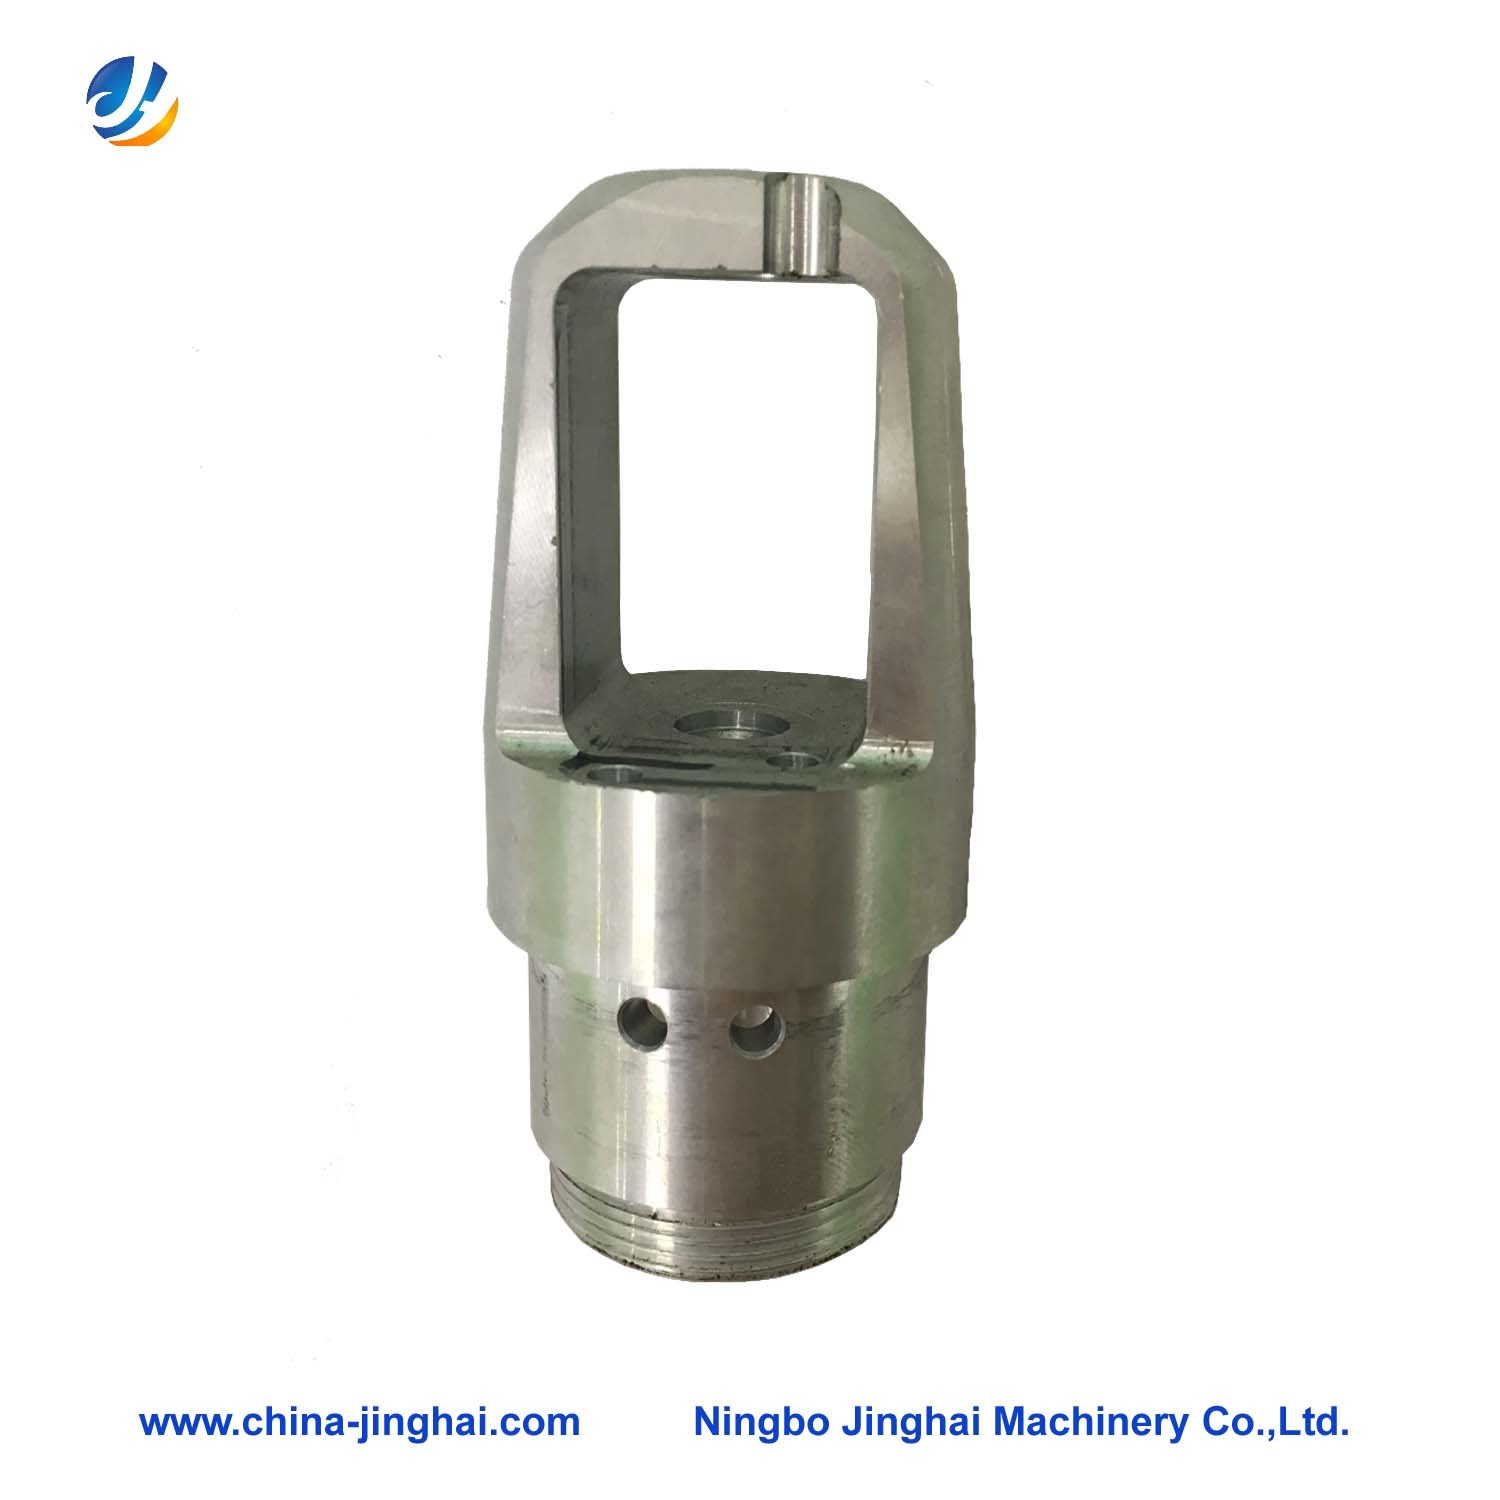 Precision Aluminum CNC Machining Light Housing Parts and Hardwares